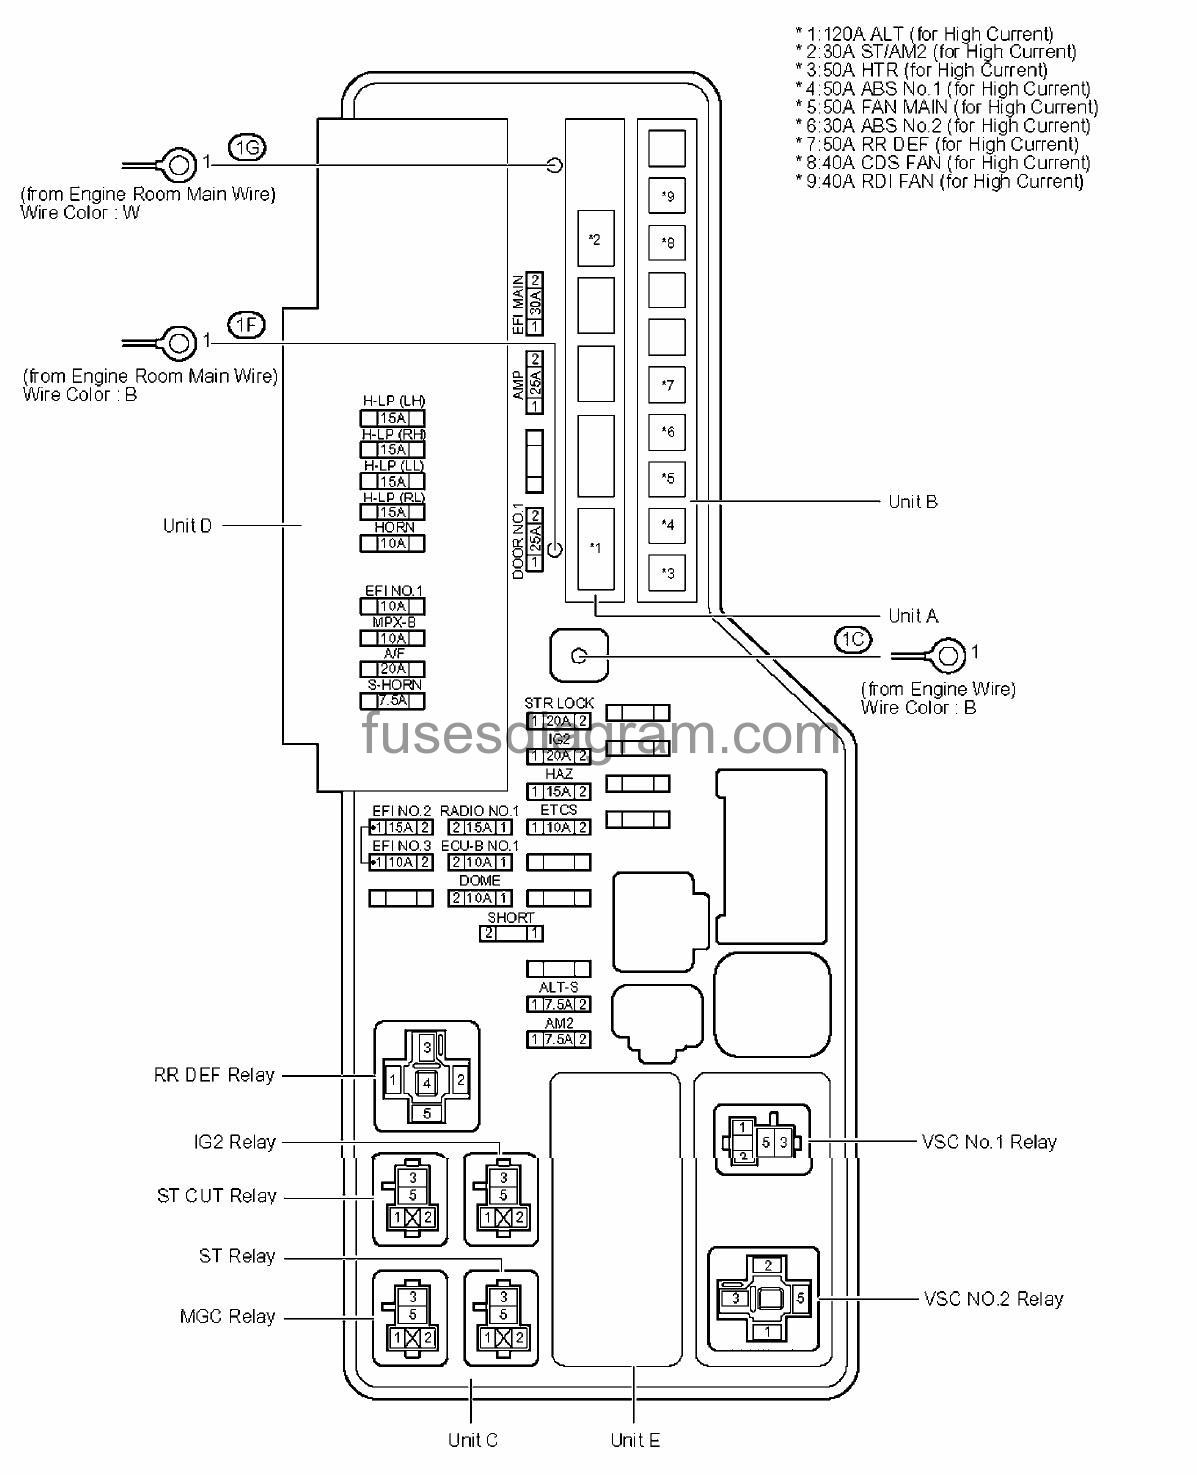 For Of A Toyota Solara Fuse Box Diagram